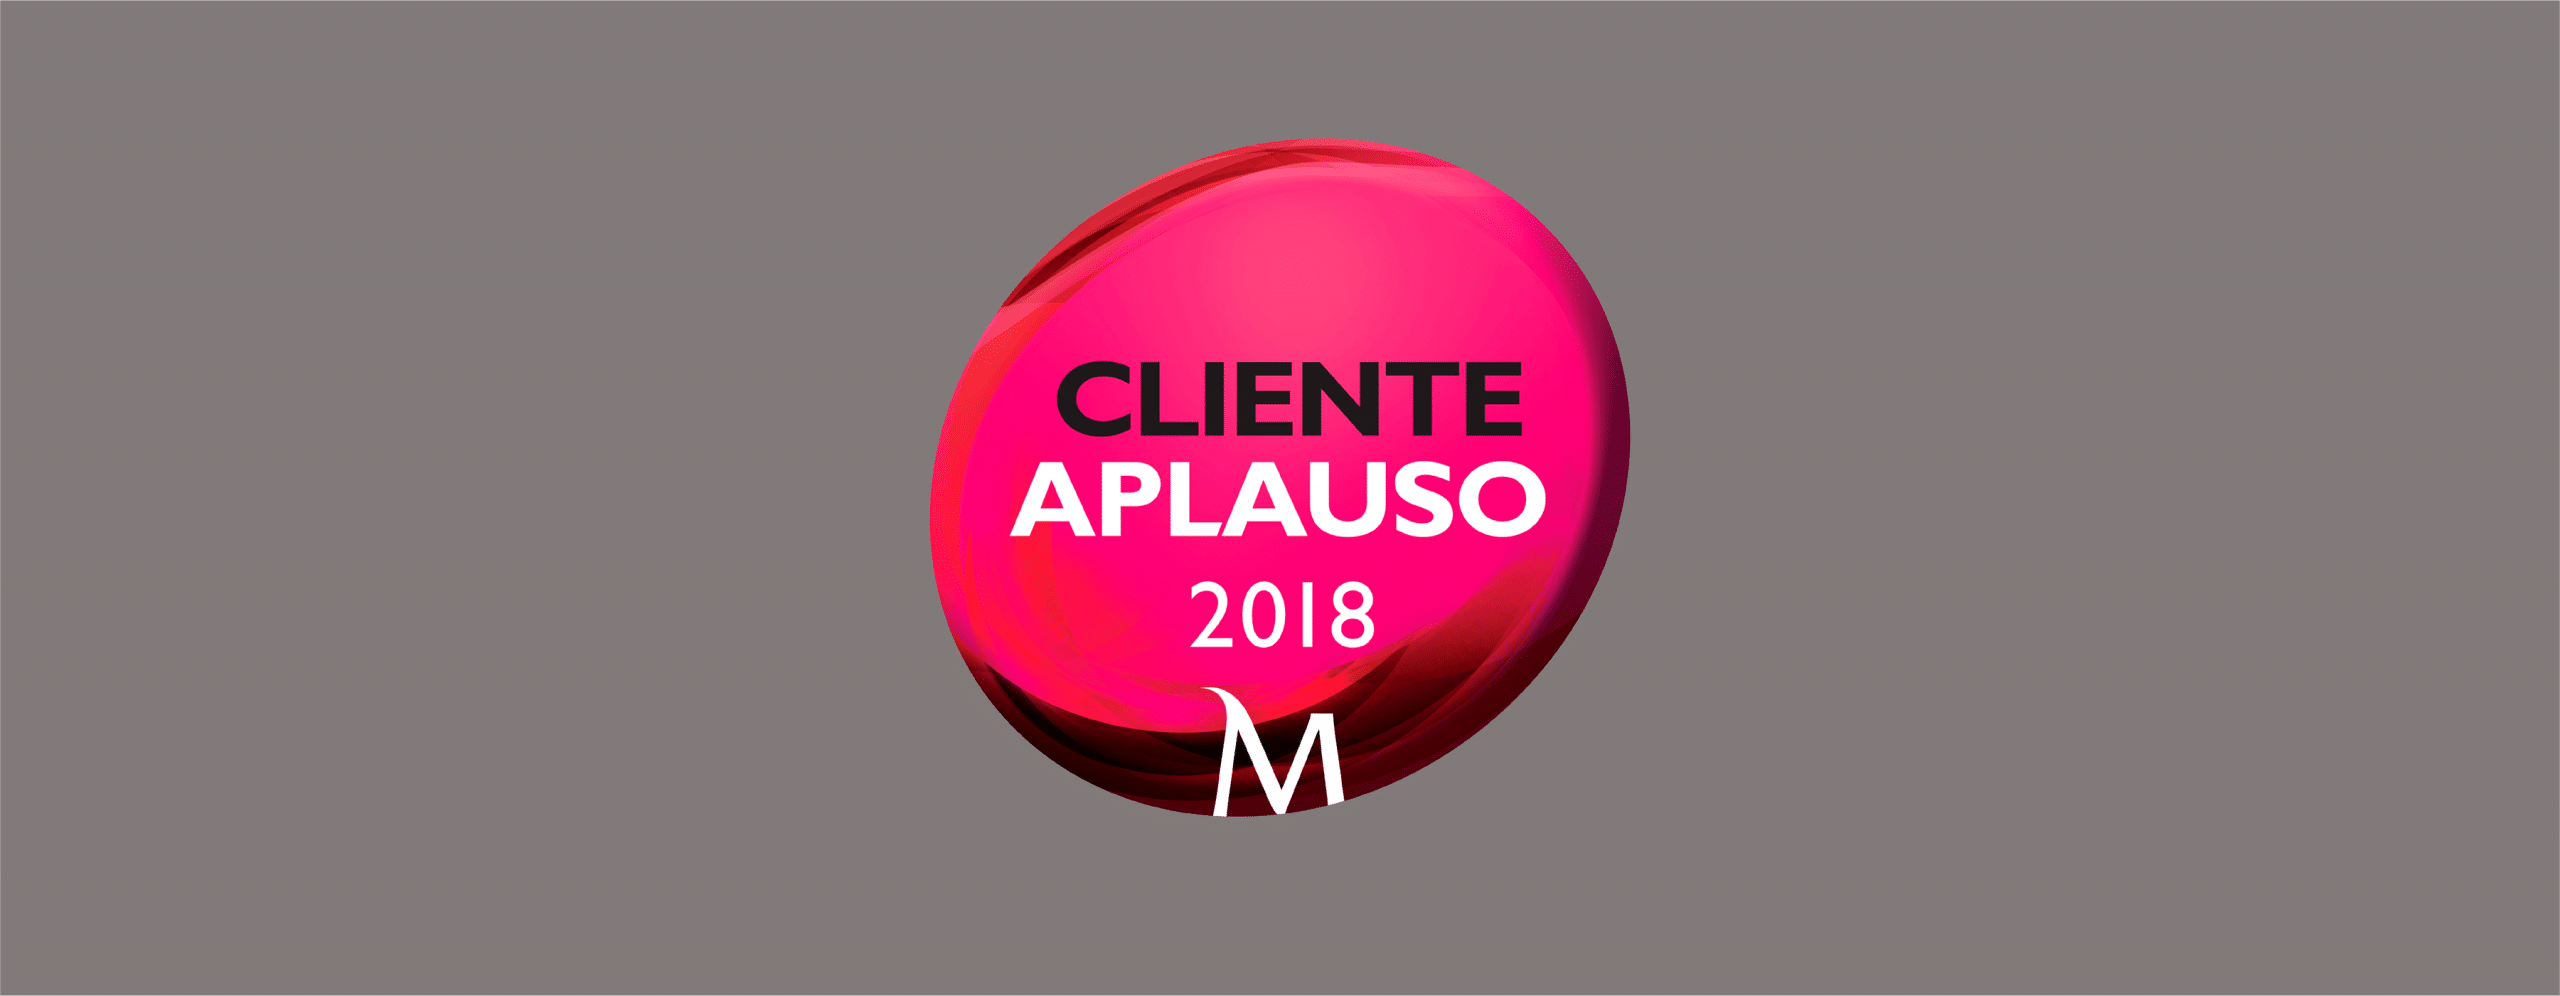 "SISQUAL distinguished with the status of ""Cliente Aplauso"""